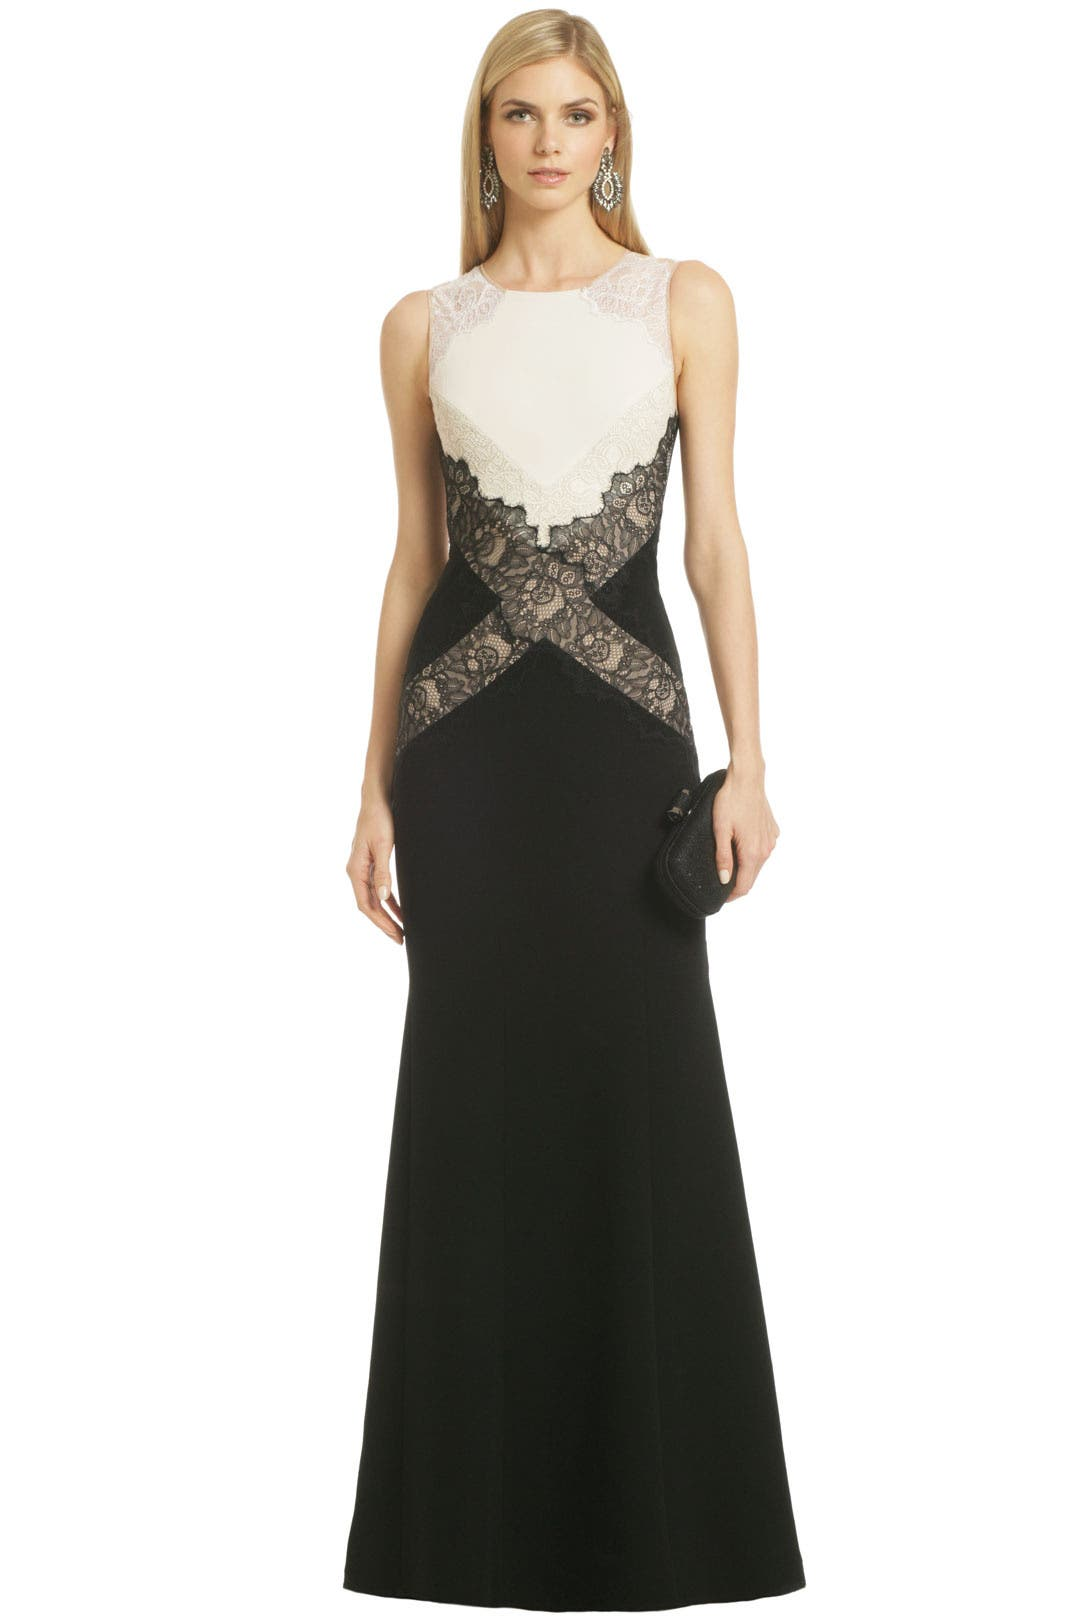 Locket of Lace Gown by BCBGMAXAZRIA